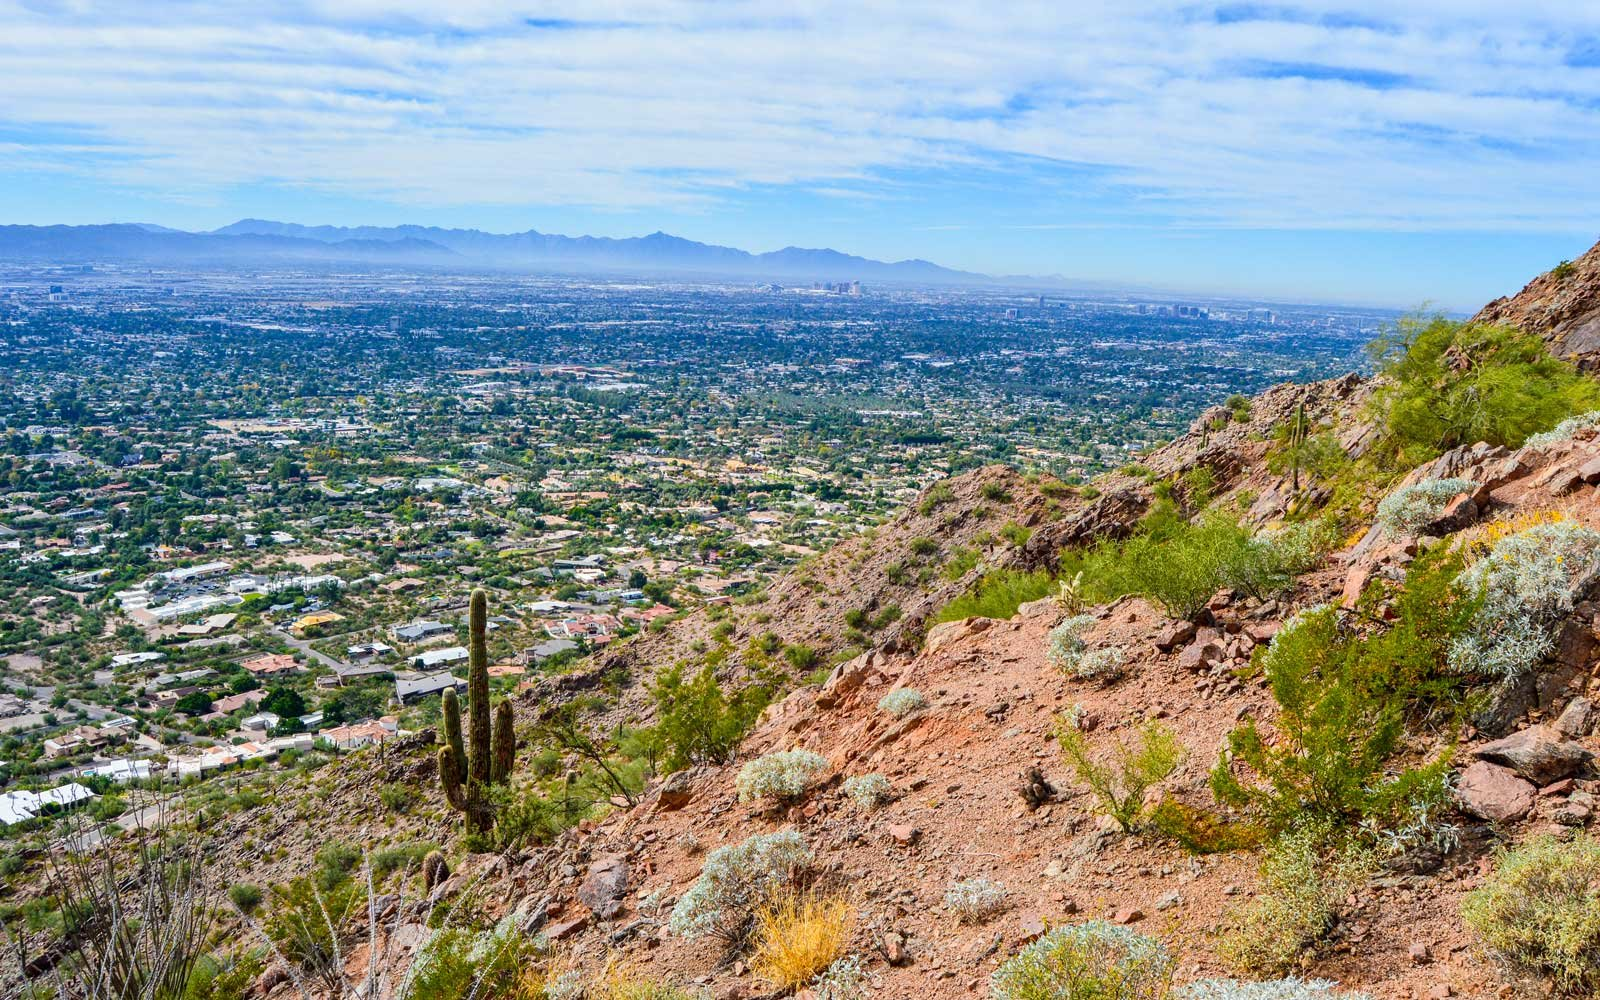 Looking down on the Phoenix desert landscape from Camelback mountain, Phoenix, AZ